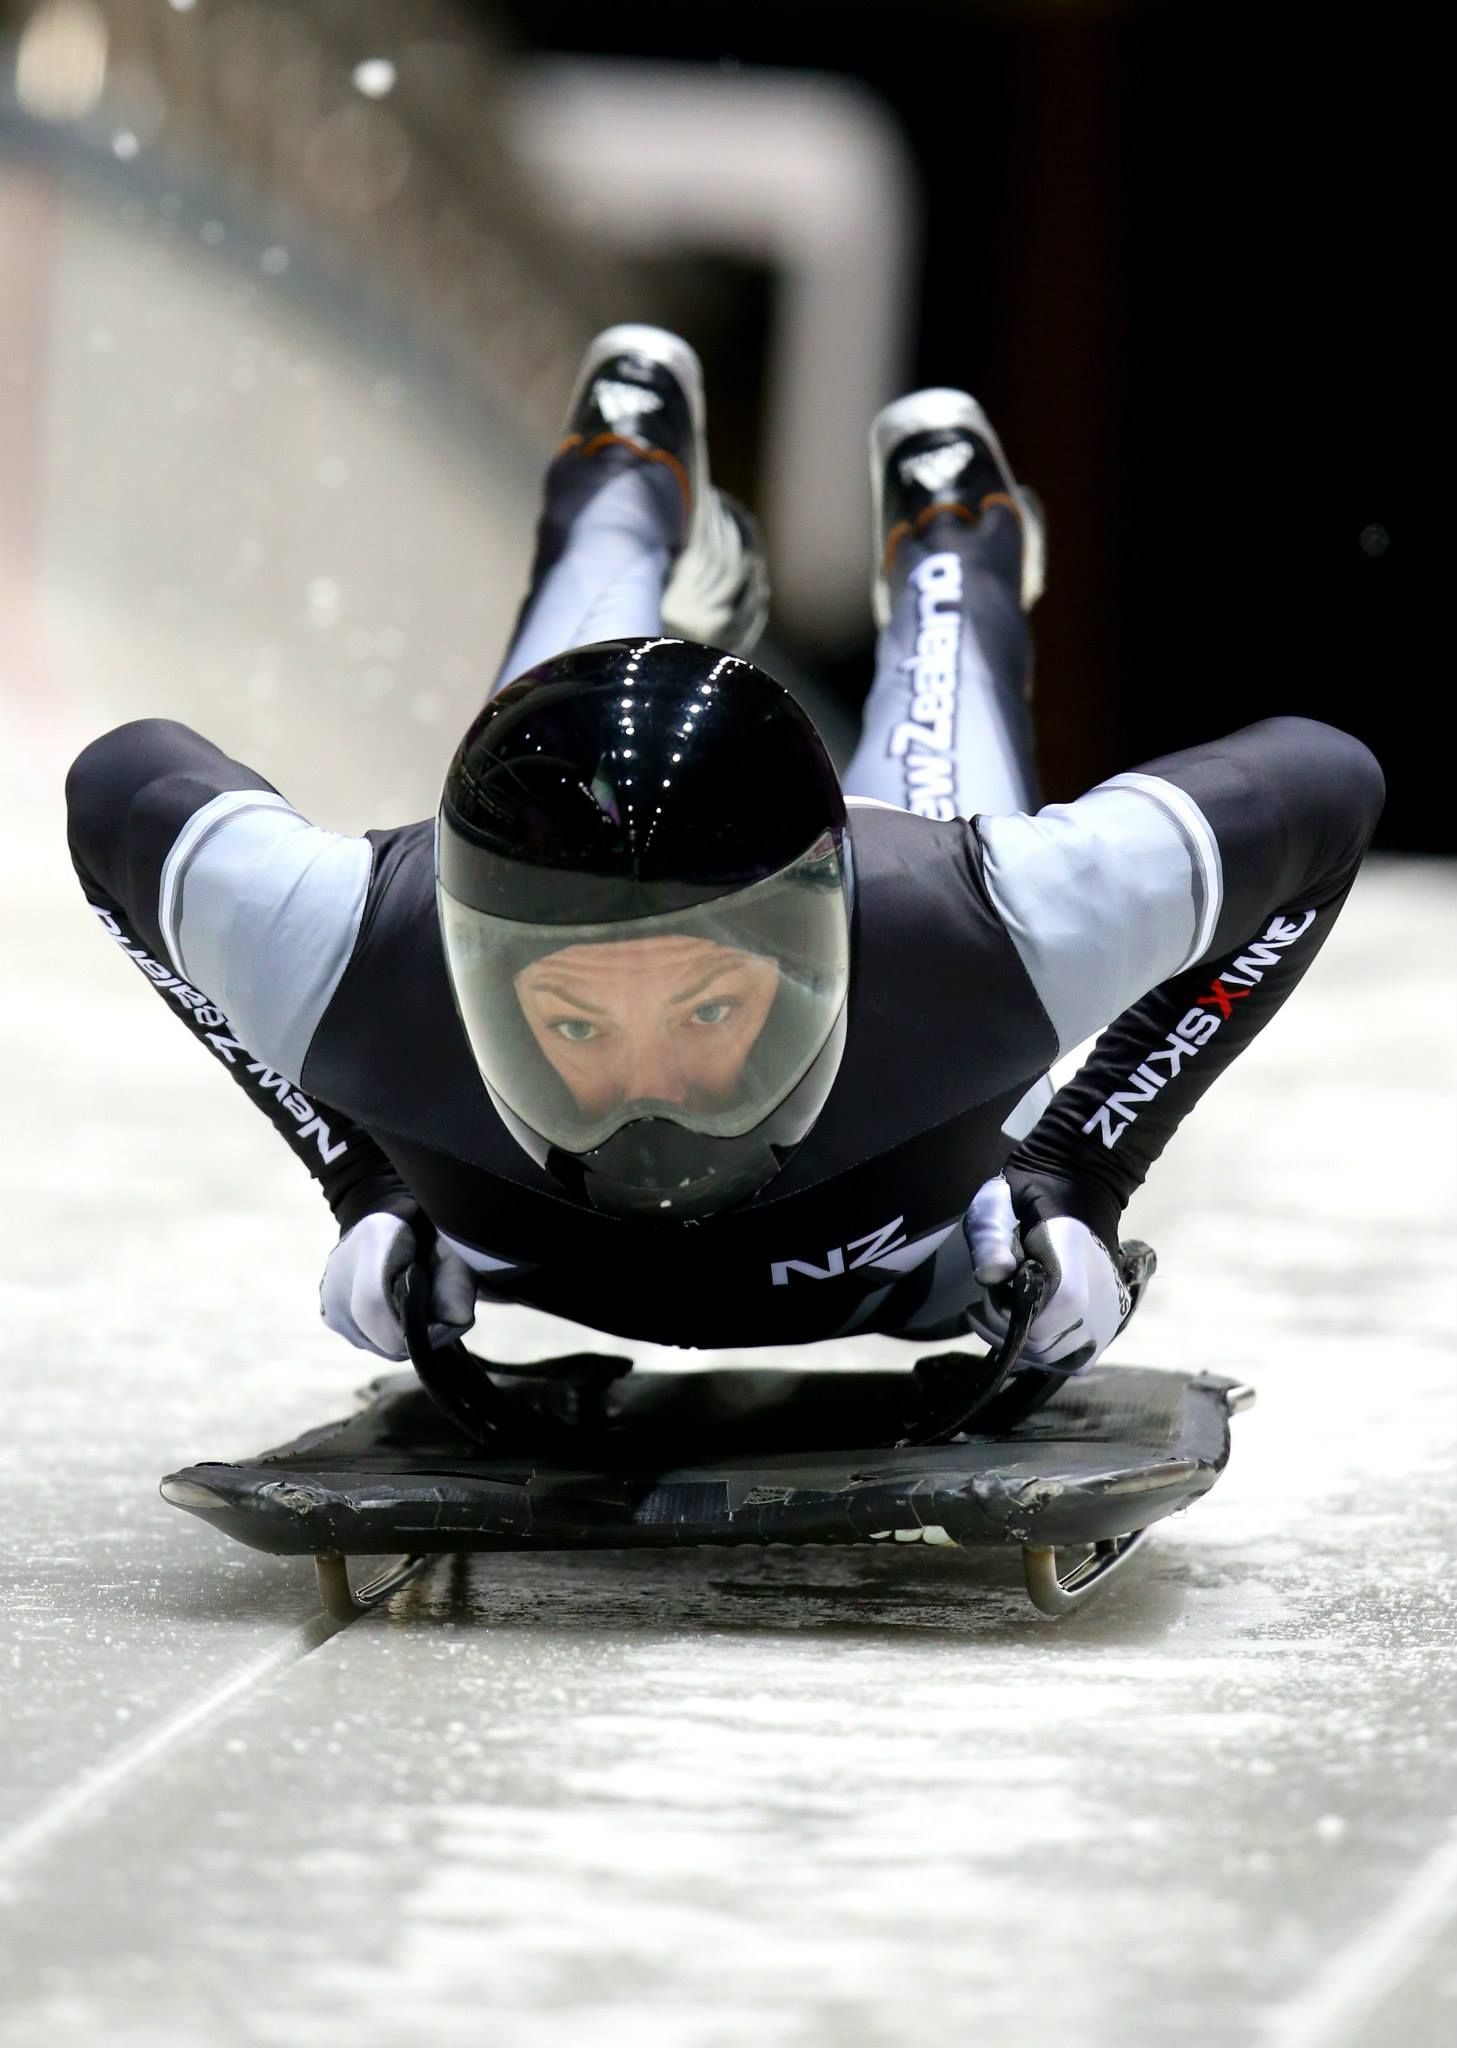 New Zealand luge Sochi2014 (With images) Luge, Winter